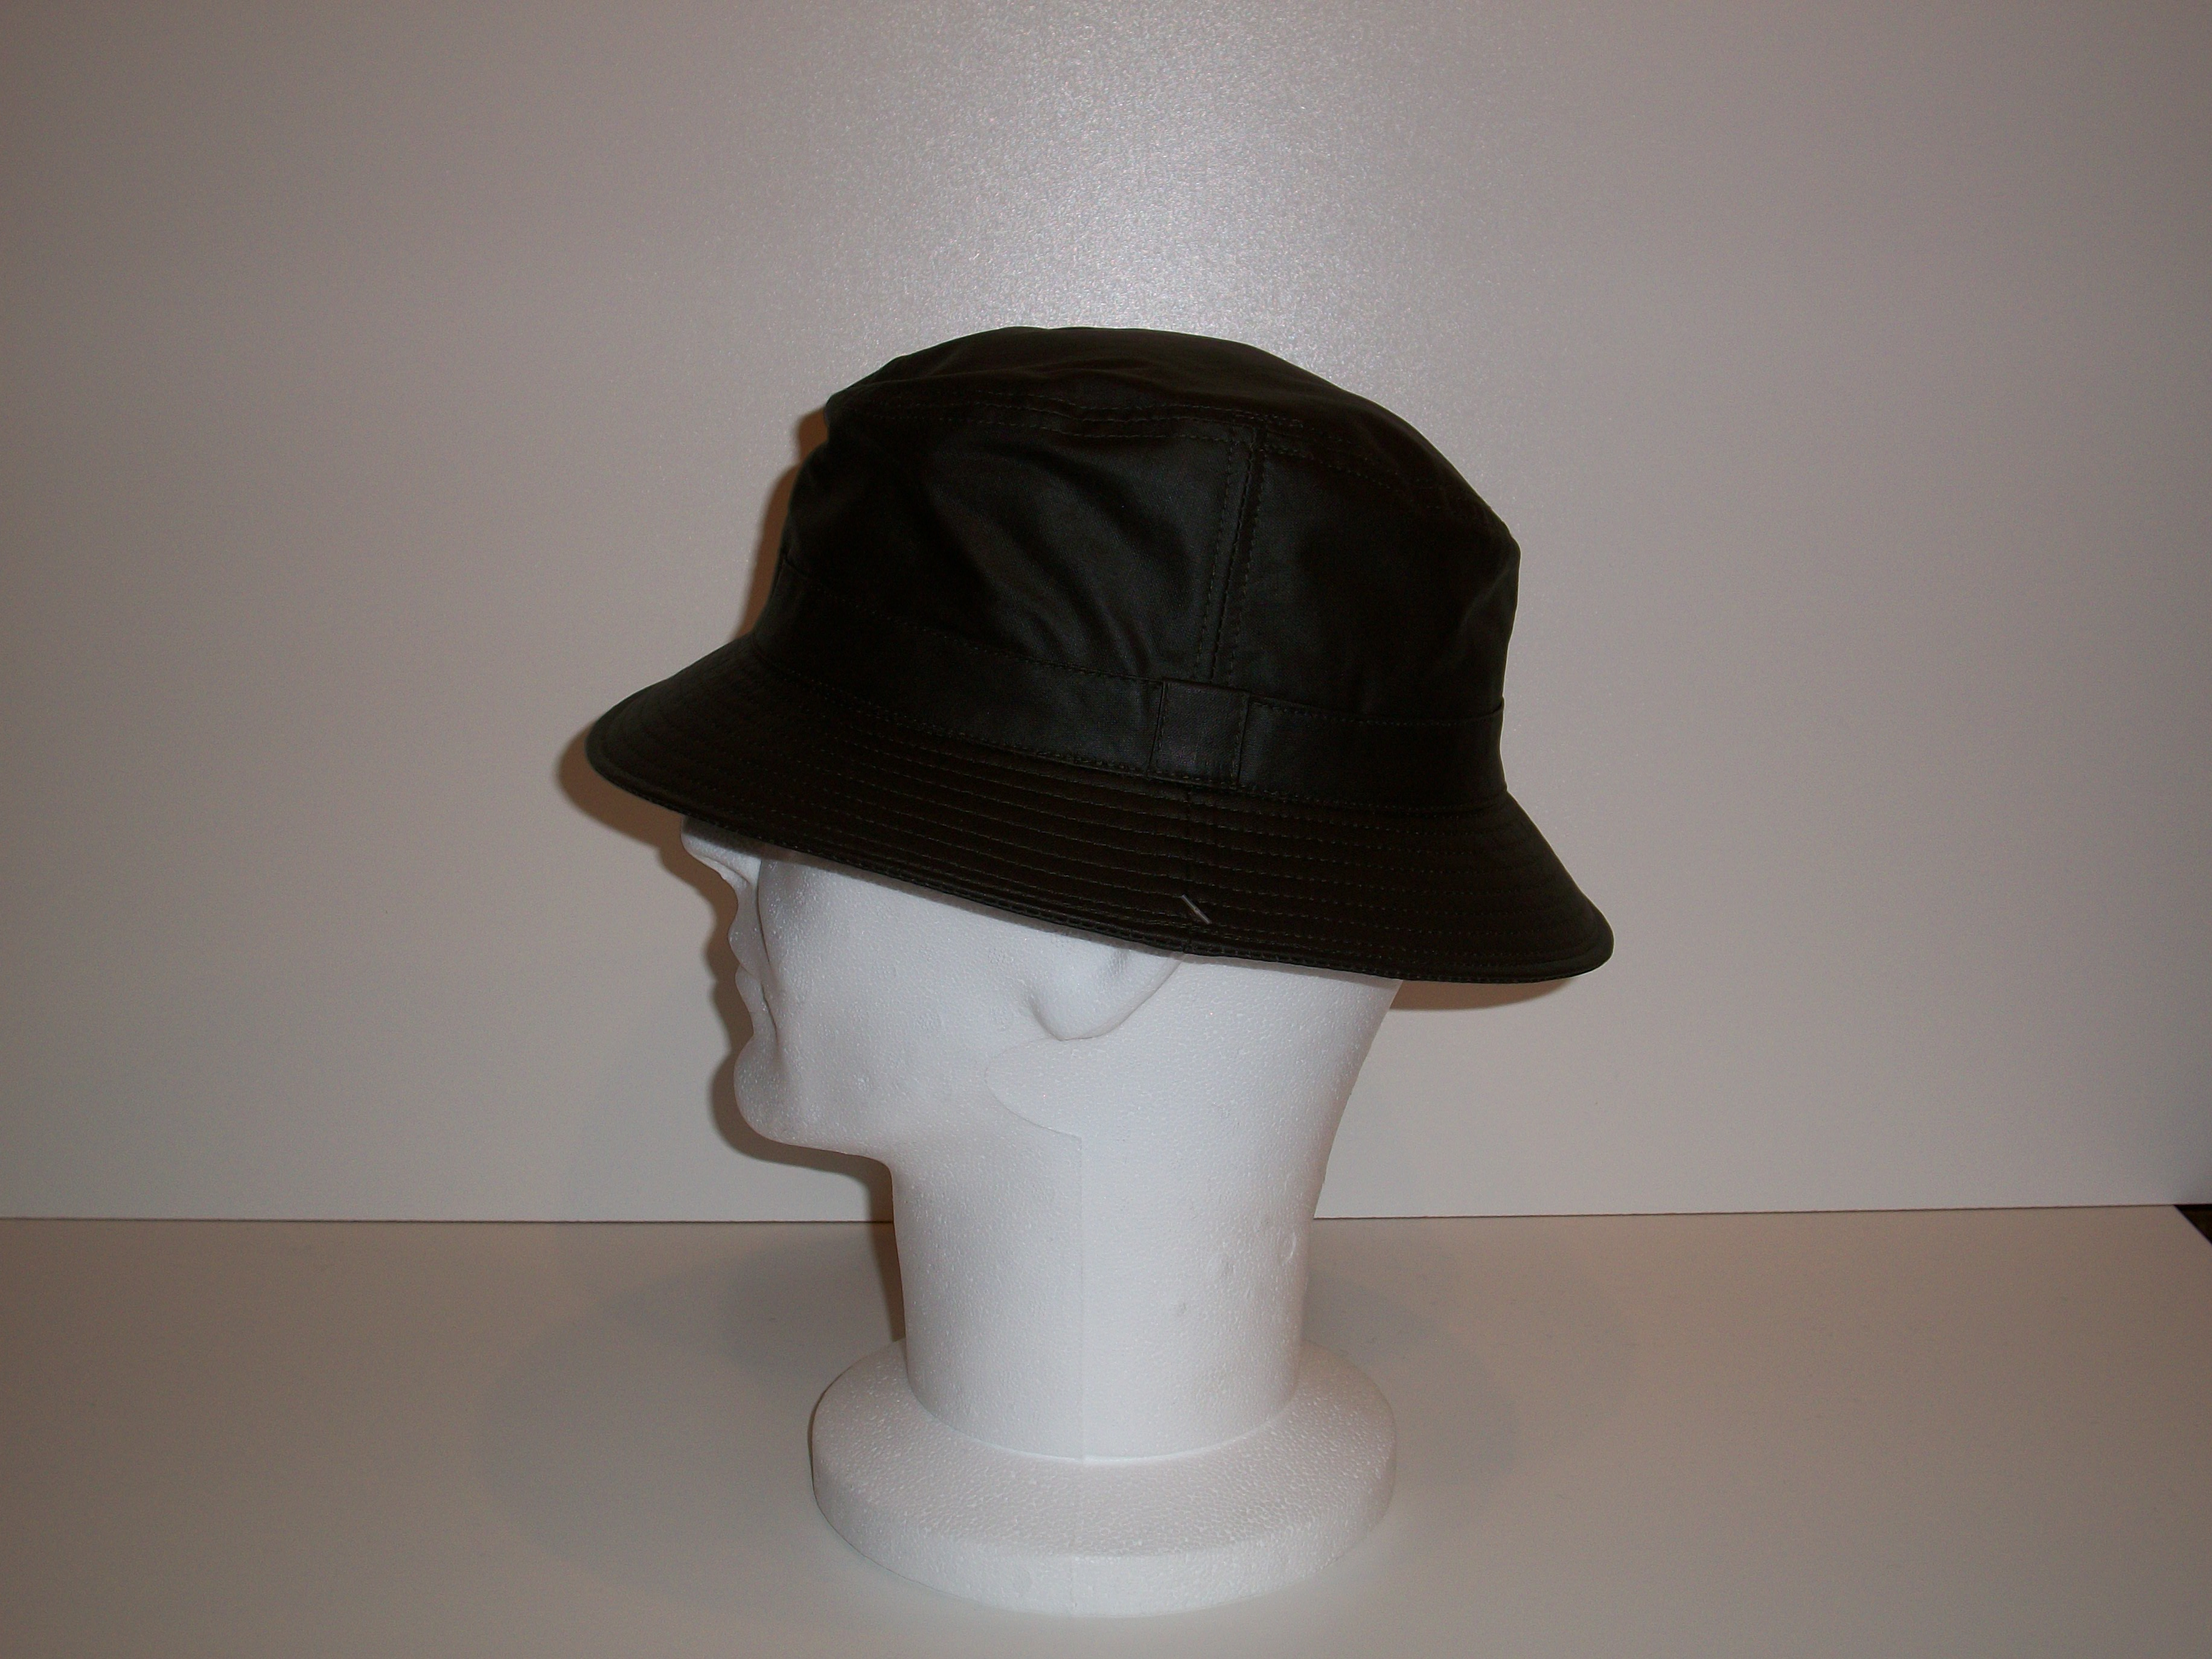 CAPPELLO IMPERMEABILE UOMO HAT HUT CHAPEAU CRUSHABLE WATER REPELLENT MADE  IN ITALY 97b847945c95